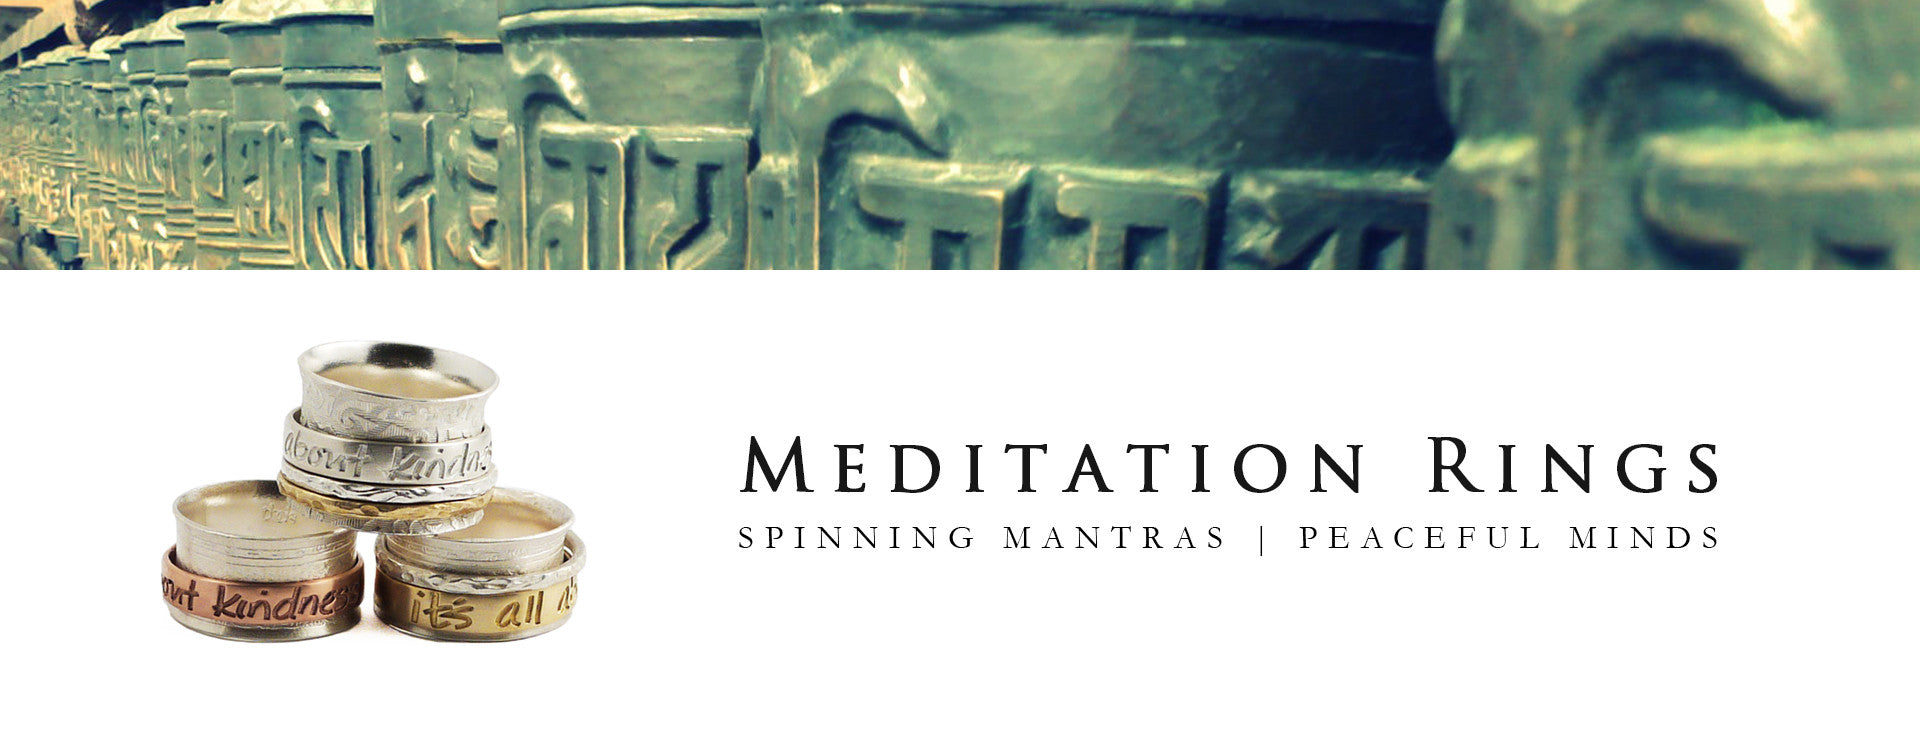 Meditation Rings - How do they work?